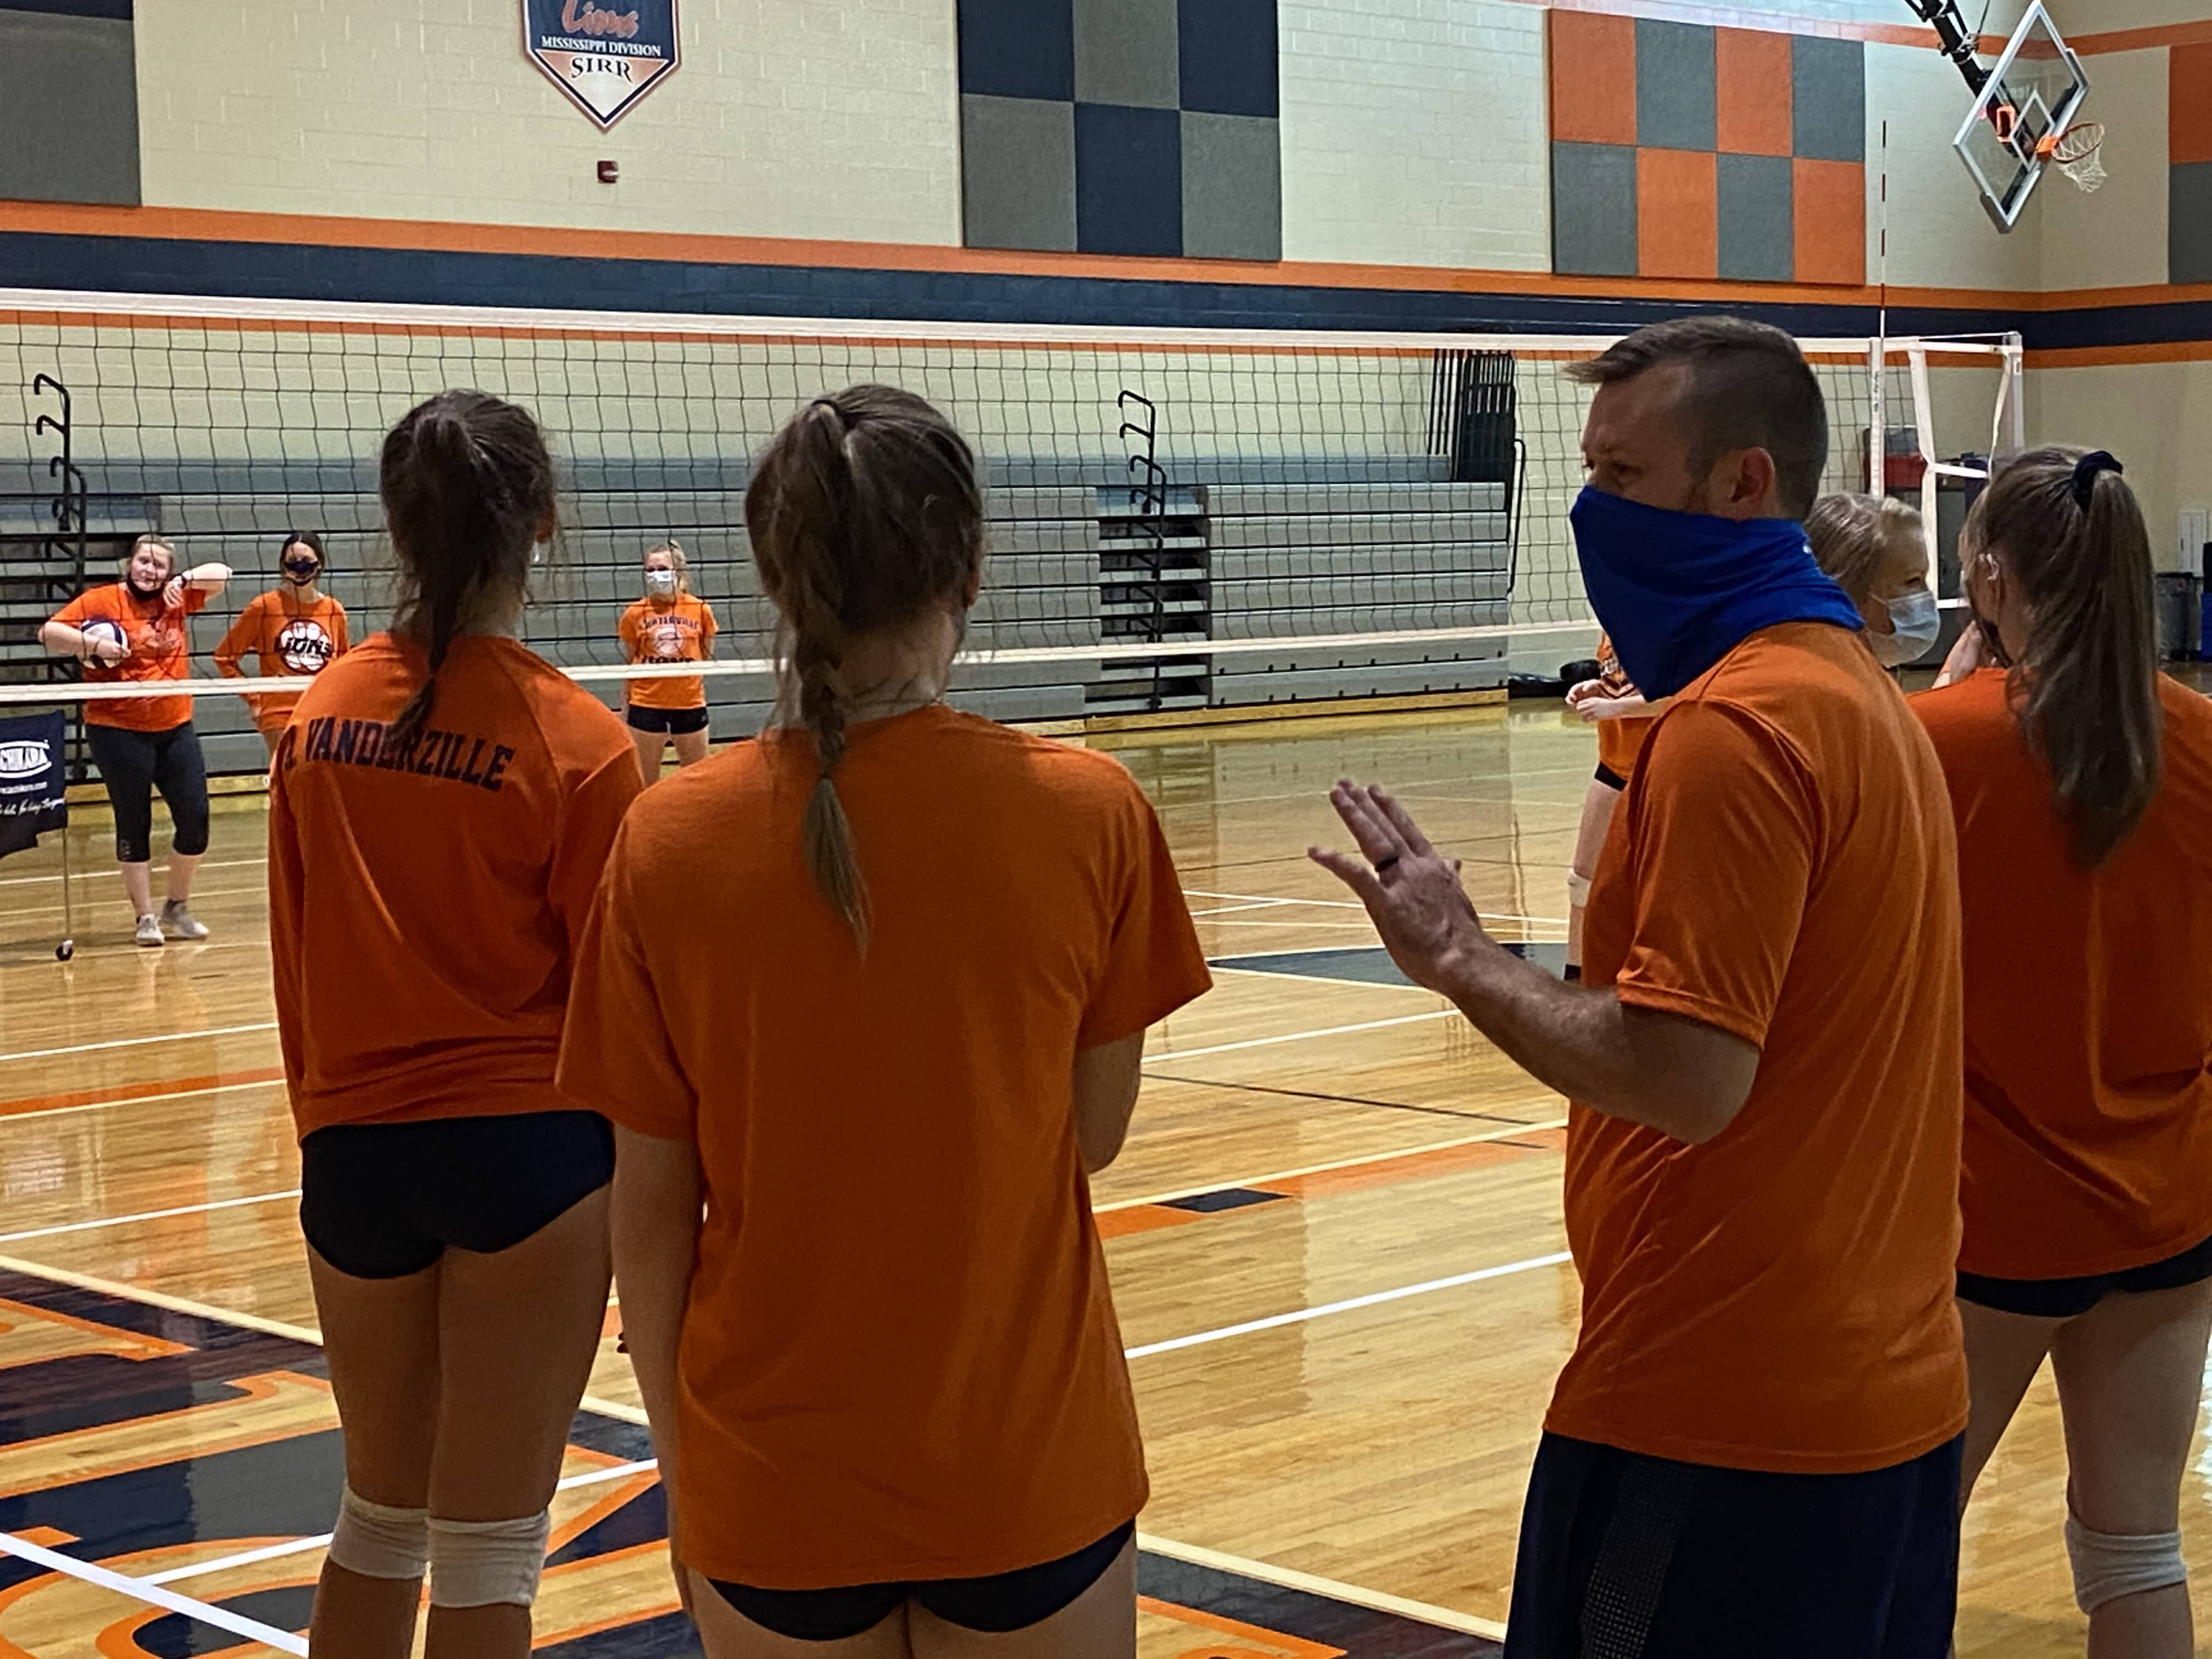 Carterville Volleyball coach Nathan Emrick instructs his players in a contact day practice in October 2020